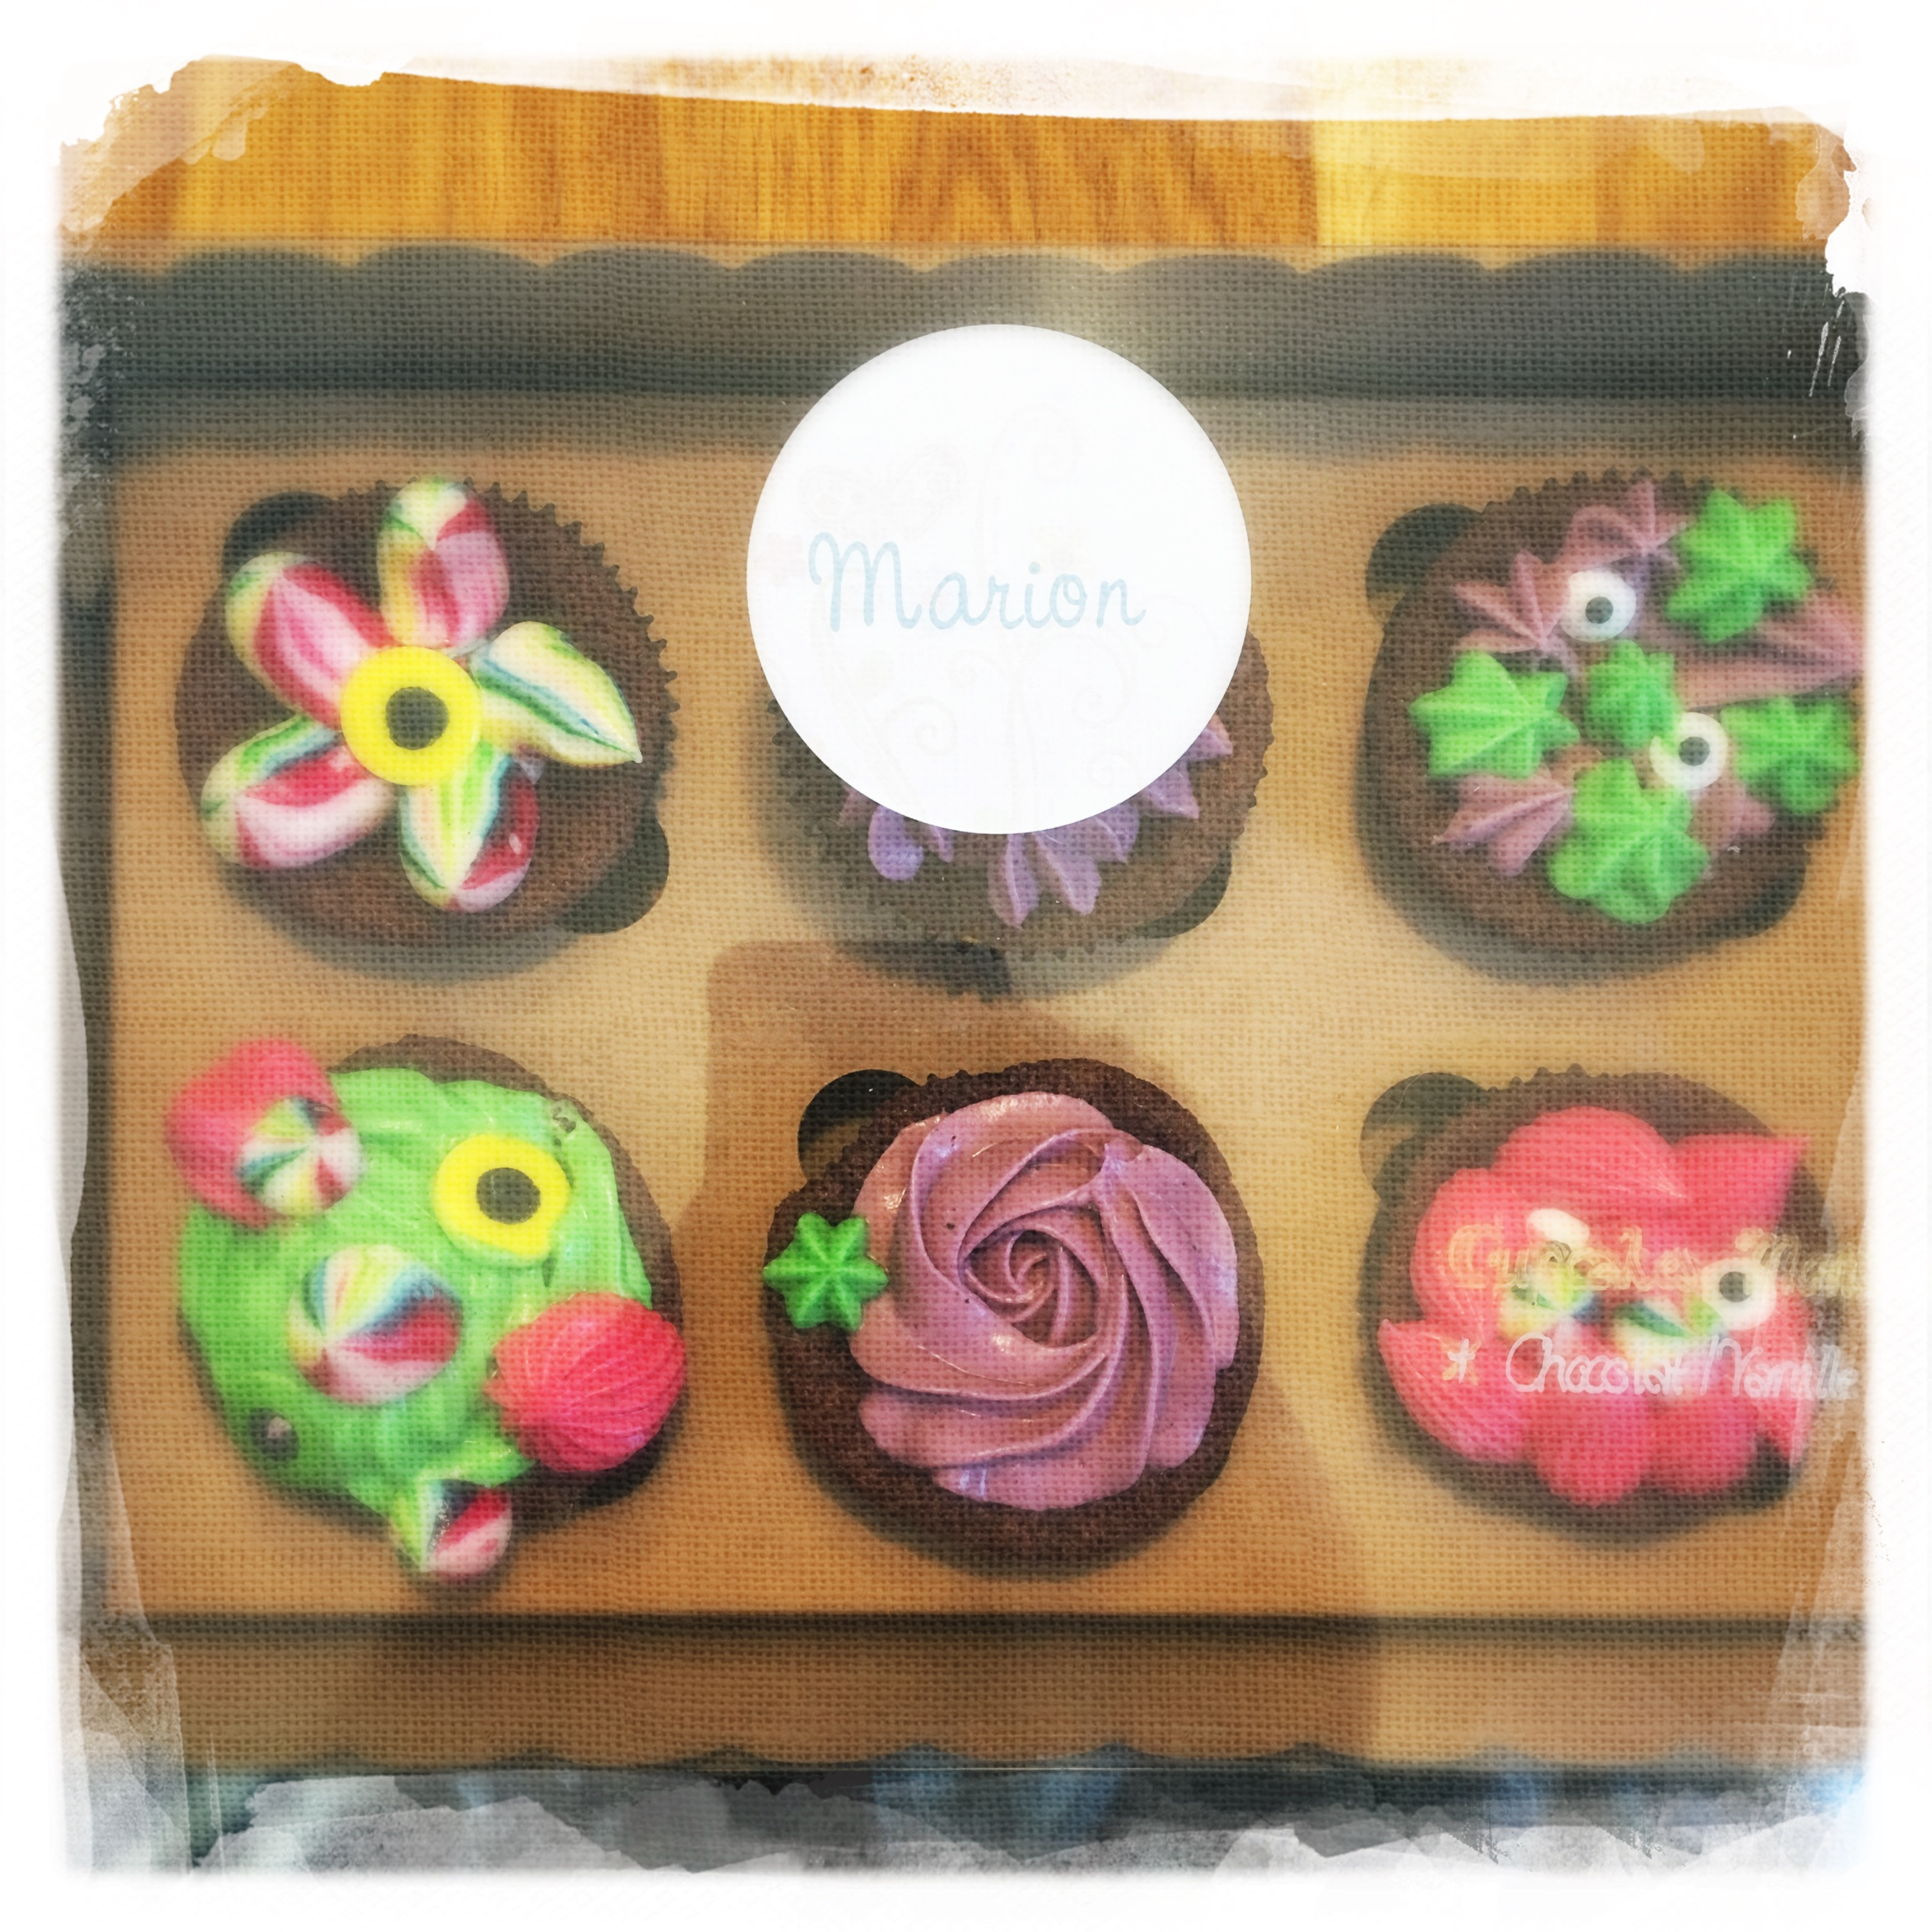 Cours privé Cupcakes Monstres XIII